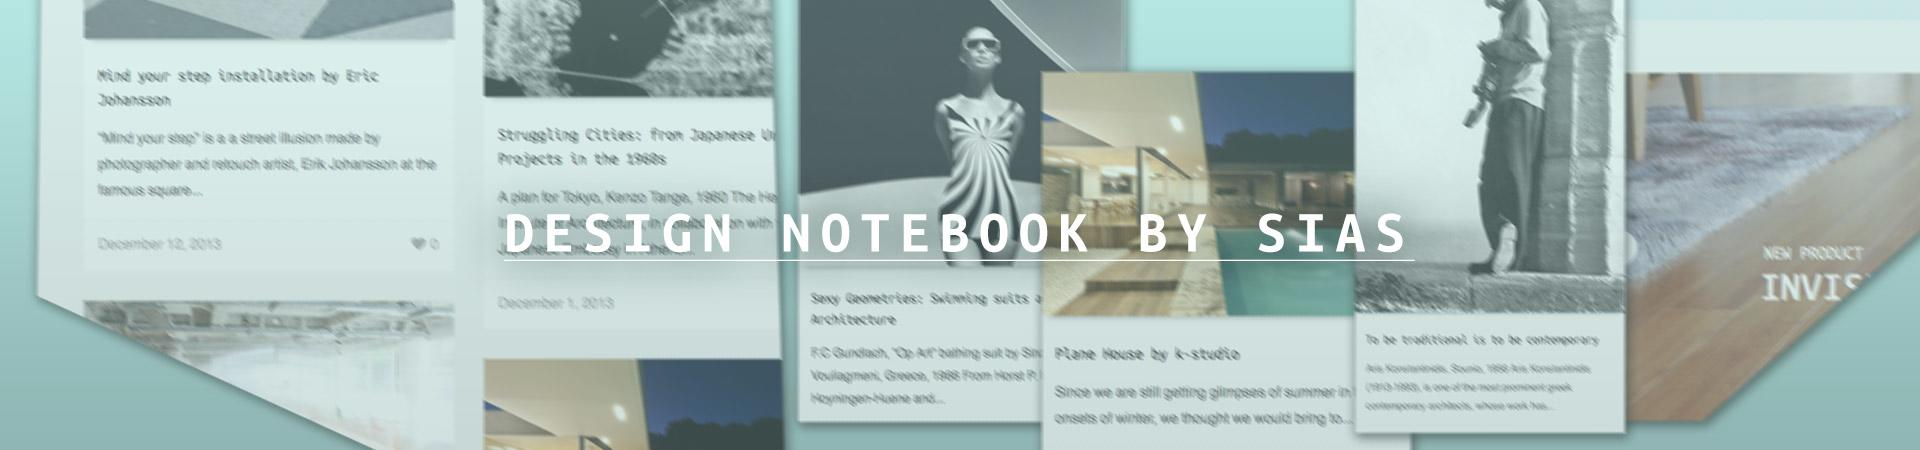 About-Sias-Design-Notebook